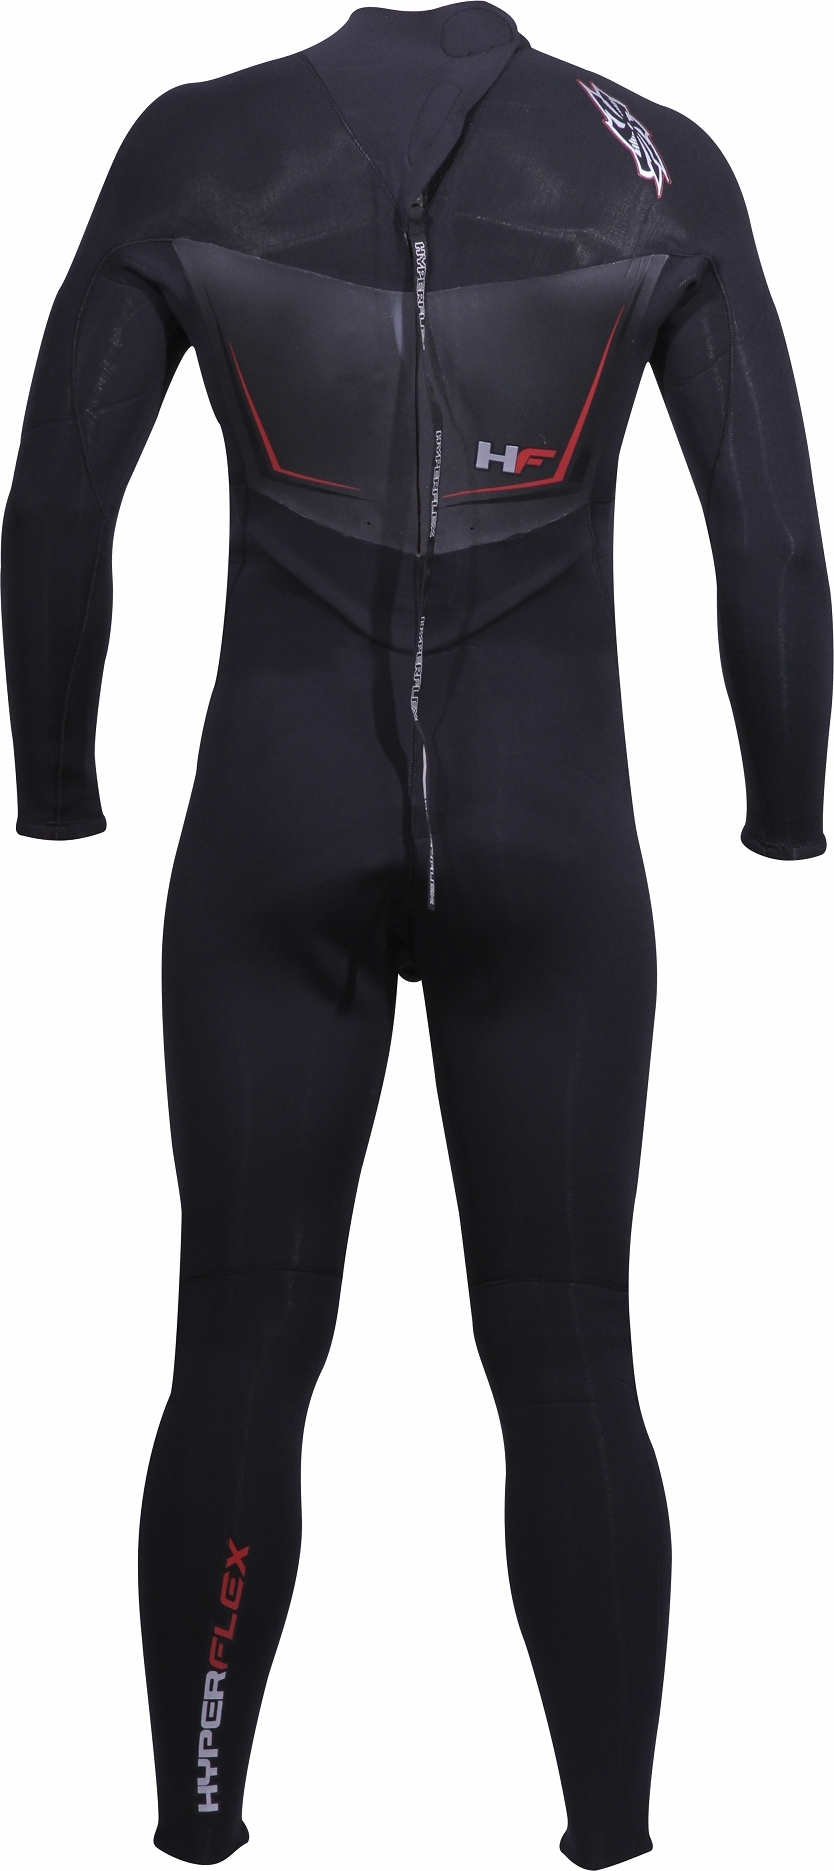 Hyperflex Cyclone 2 3/2mm Men's Wetsuit - ALL NEW DESIGN! - XD832MB-01